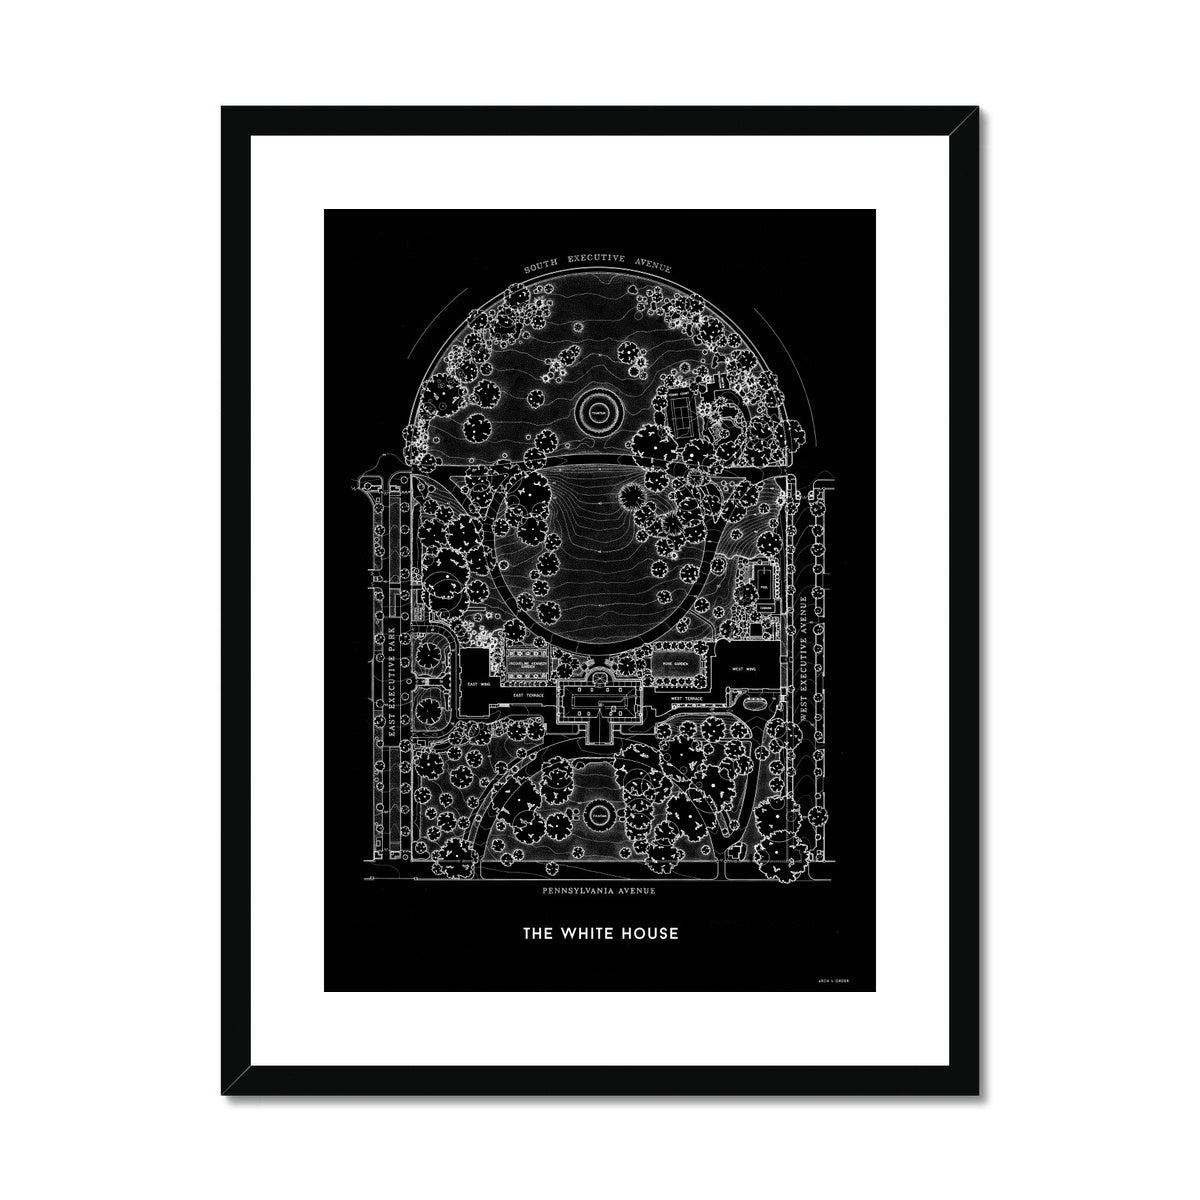 The White House Site Plan - Black -  Framed & Mounted Print